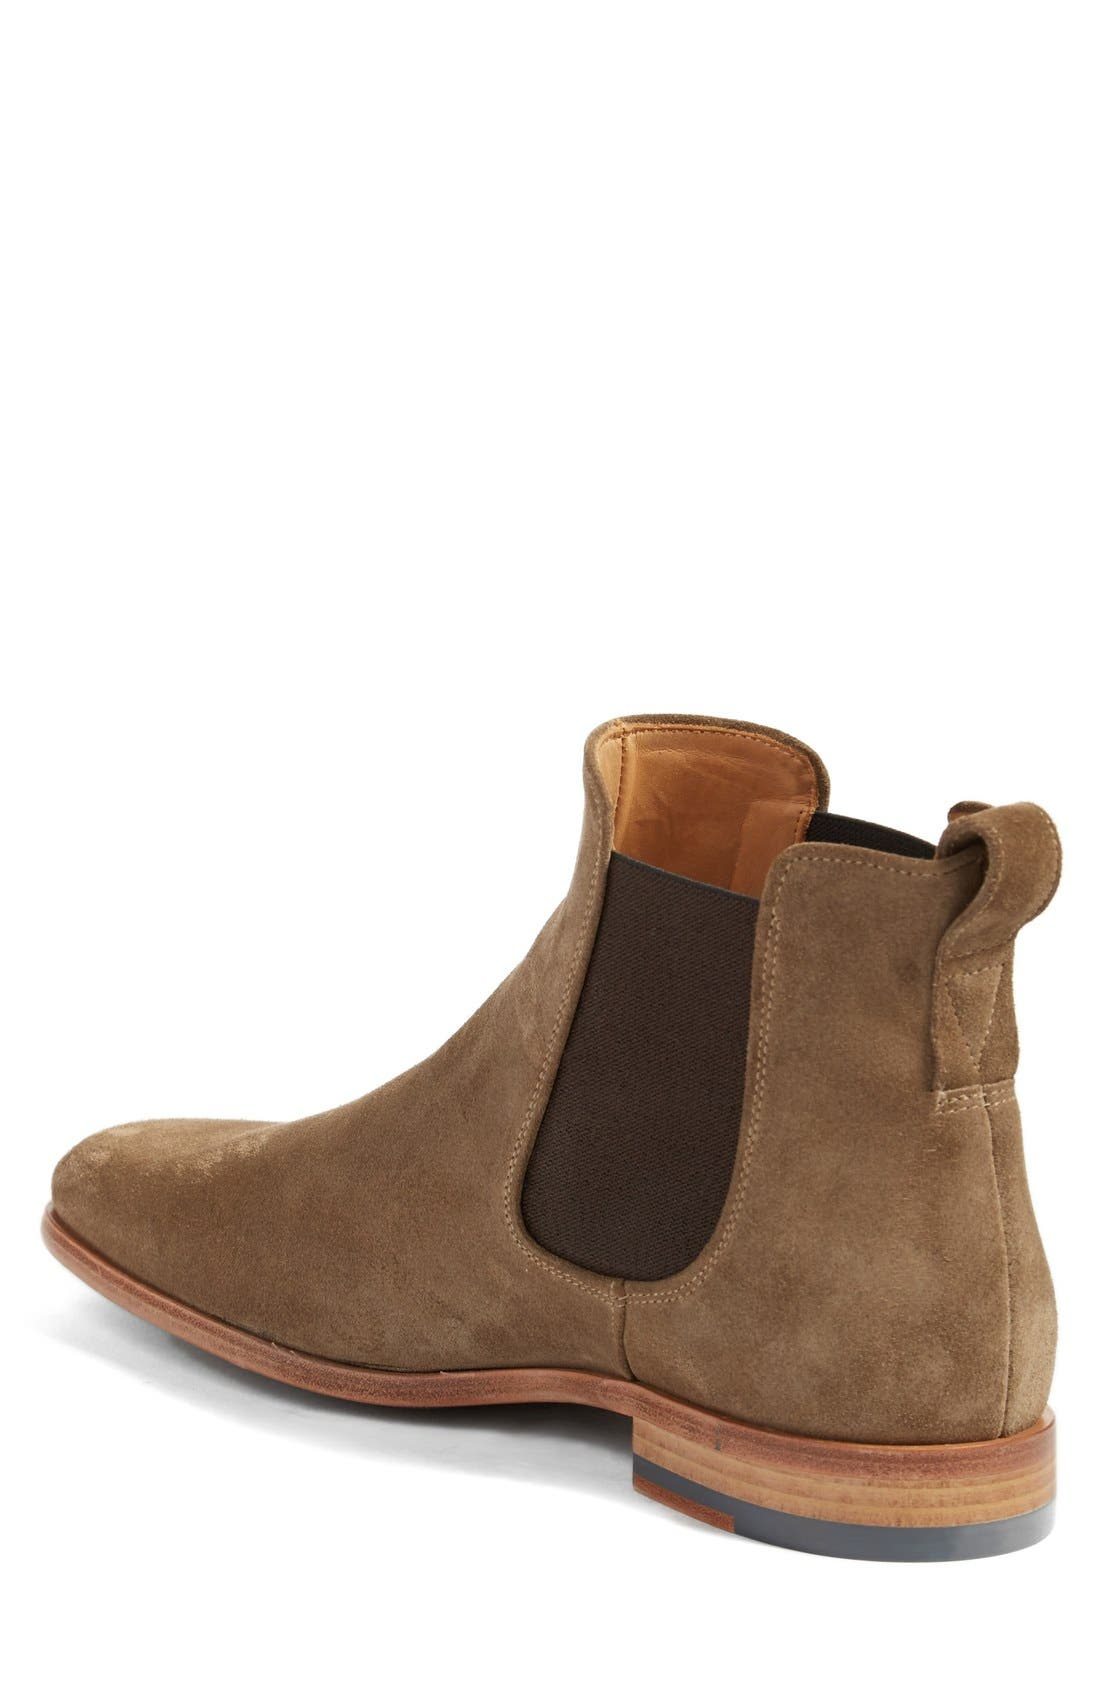 Arthur Chelsea Boot,                             Alternate thumbnail 12, color,